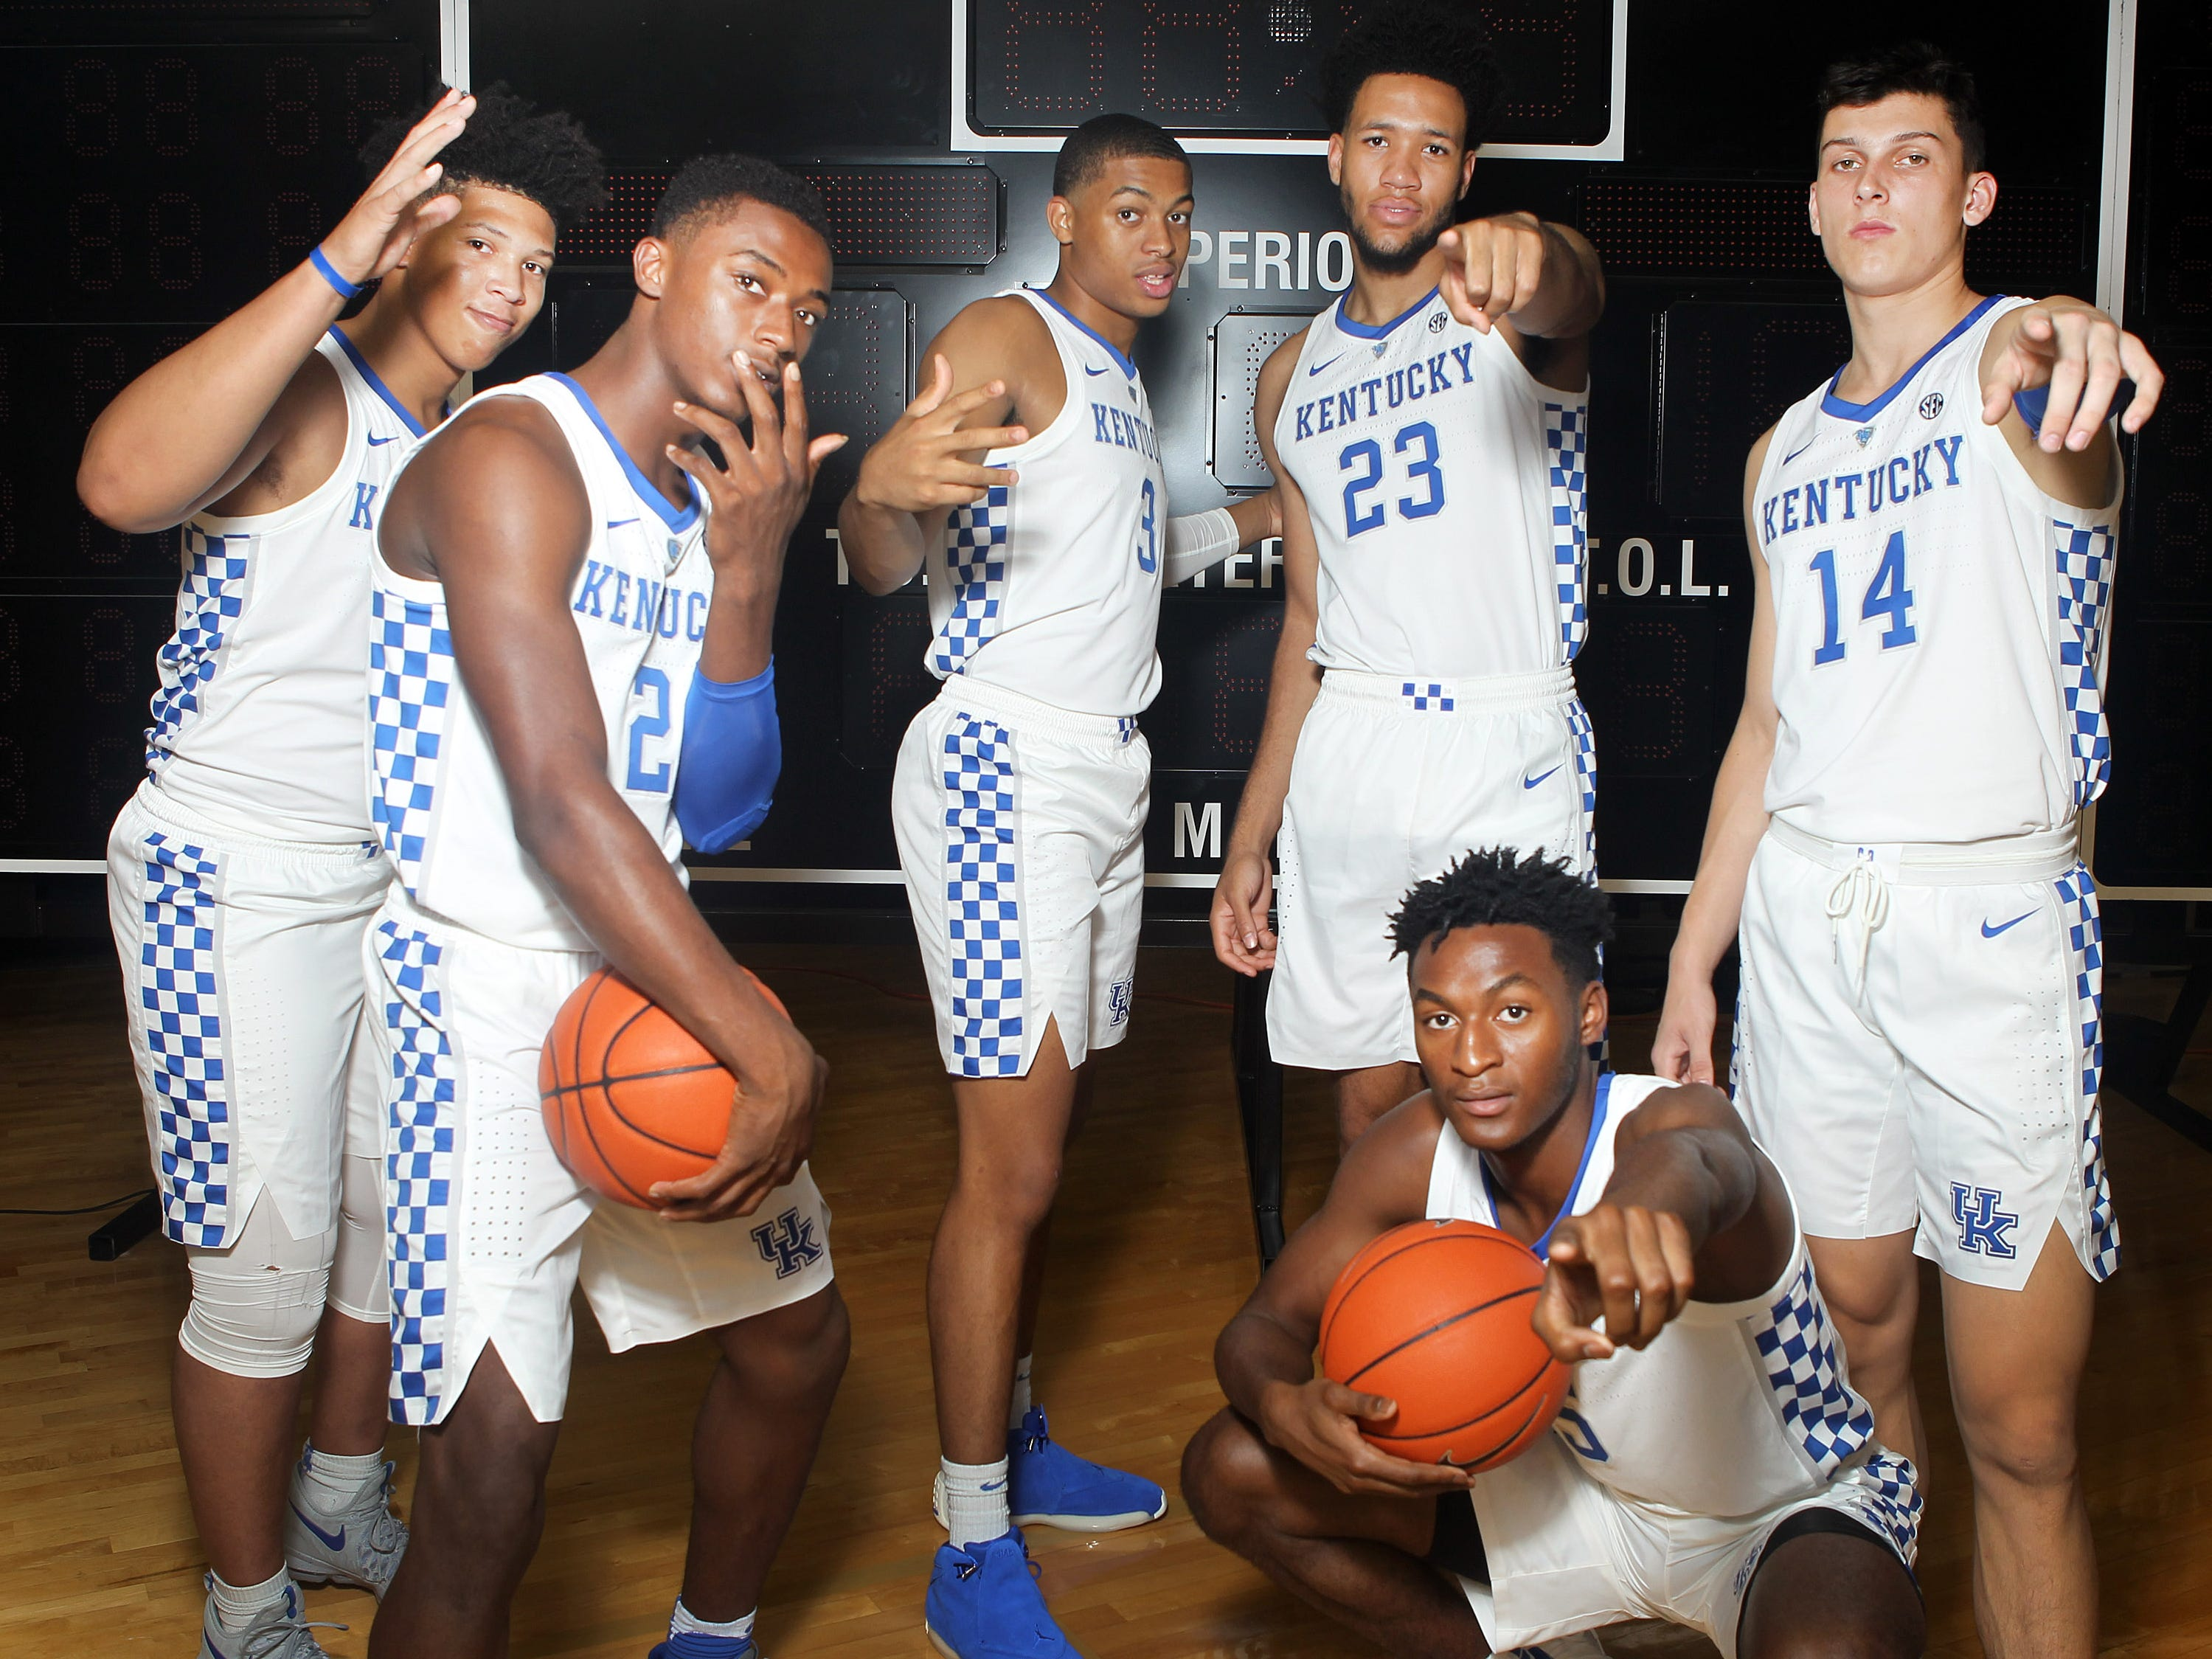 Kentucky freshmen (from left) Zan Payne (21), Ashton Hagans (2), Keldon Johnson (3), EJ Montgomery (23), Immanuel Quickley (5), and Tyler Herro (14) pose during the teams picture day in Memorial Coliseum on campus. Sep. 20, 2018